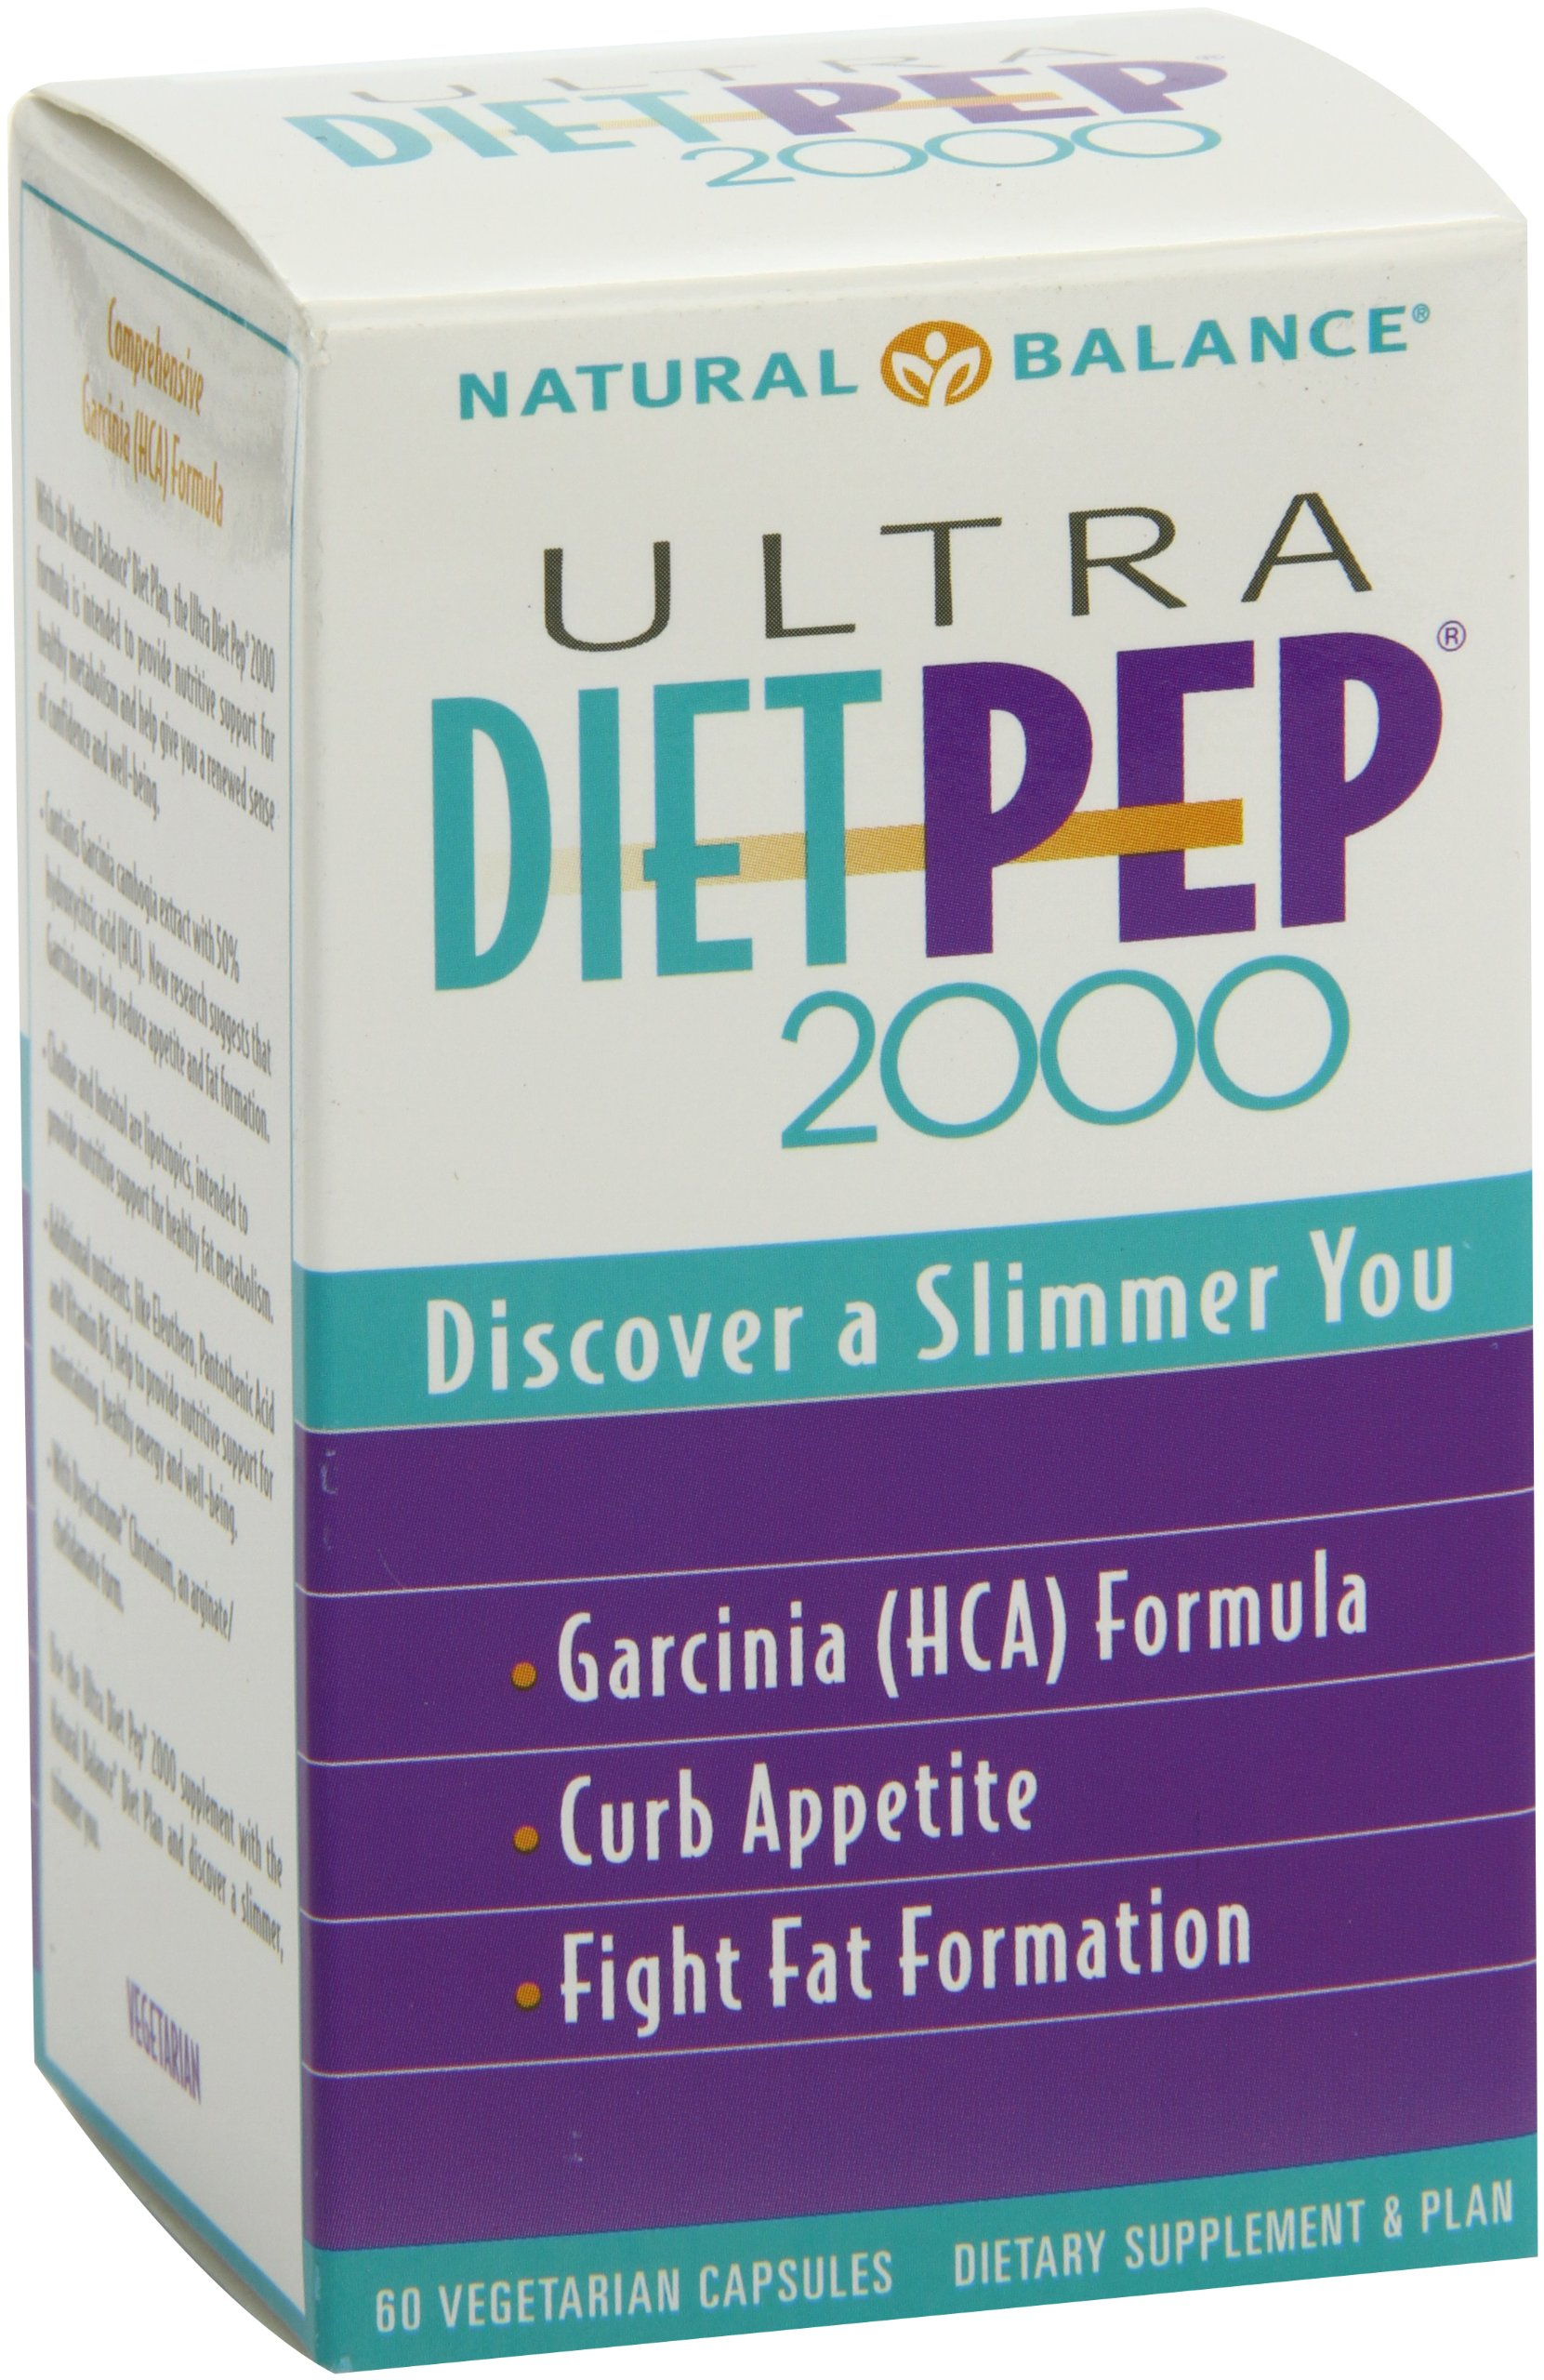 Natural Balance - Ultra Diet Pep 2000 60 Capsules by Natural Balance